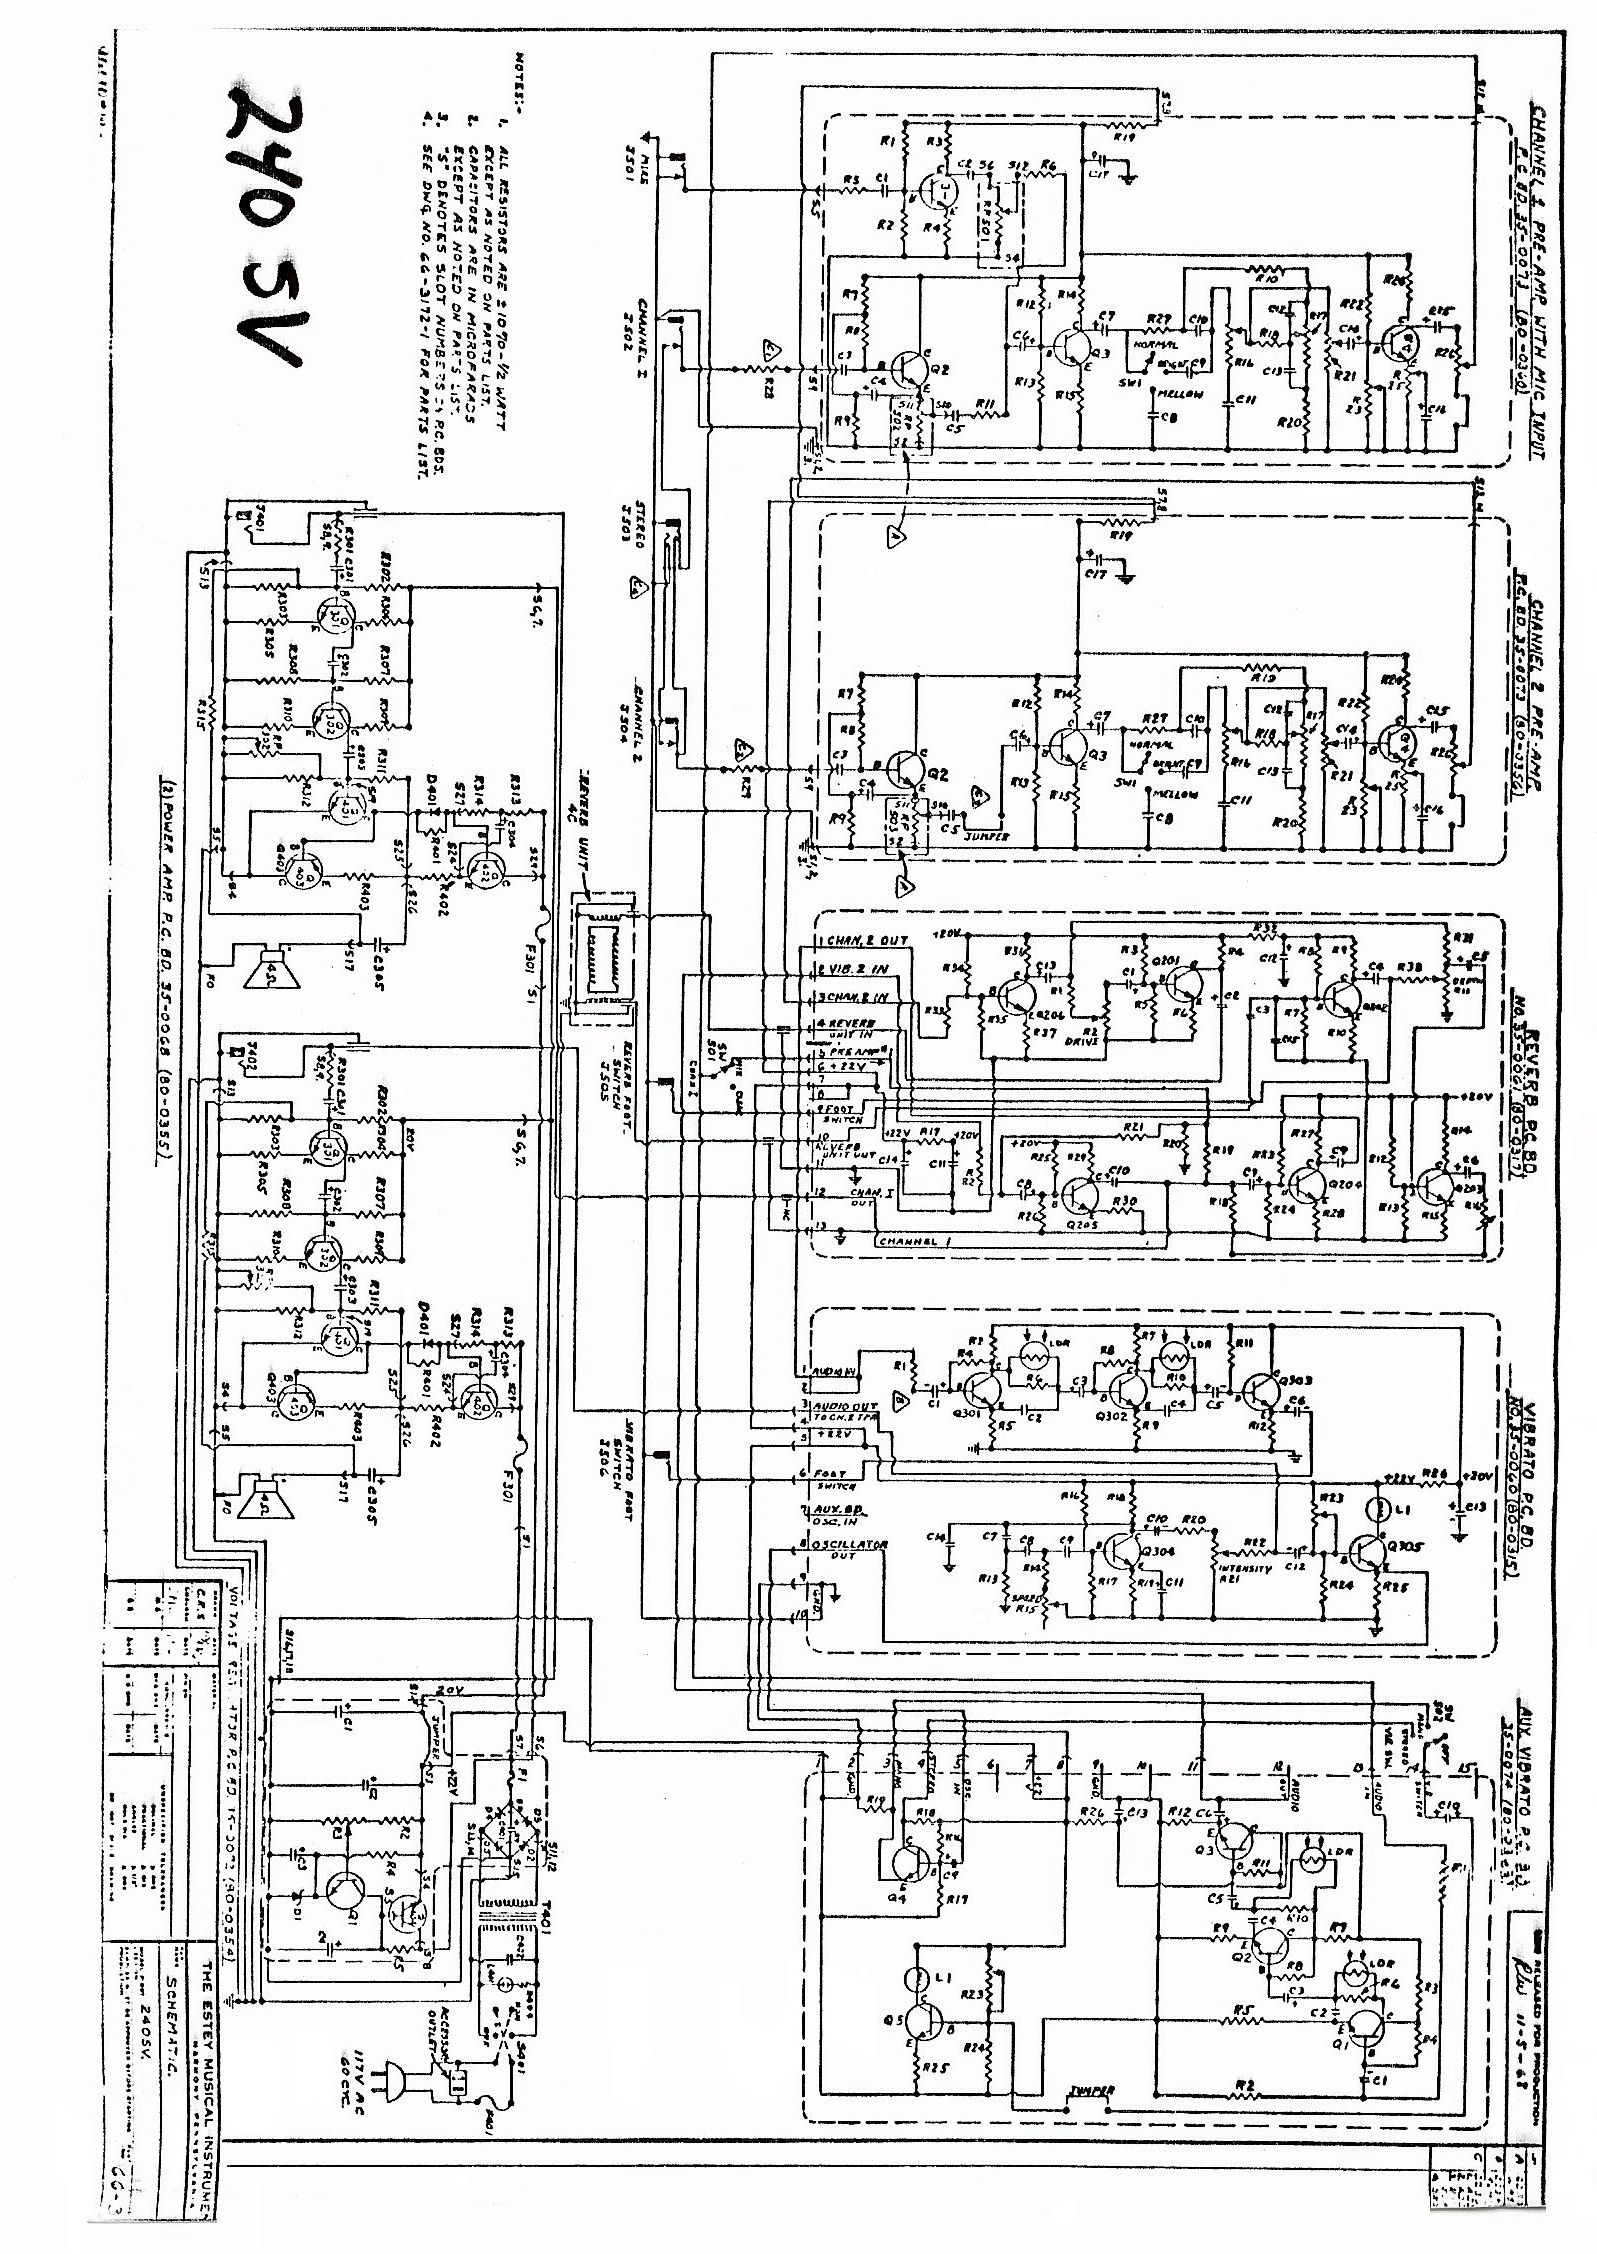 Tube Amp Diagram 240sv Magna Chordion Schematic